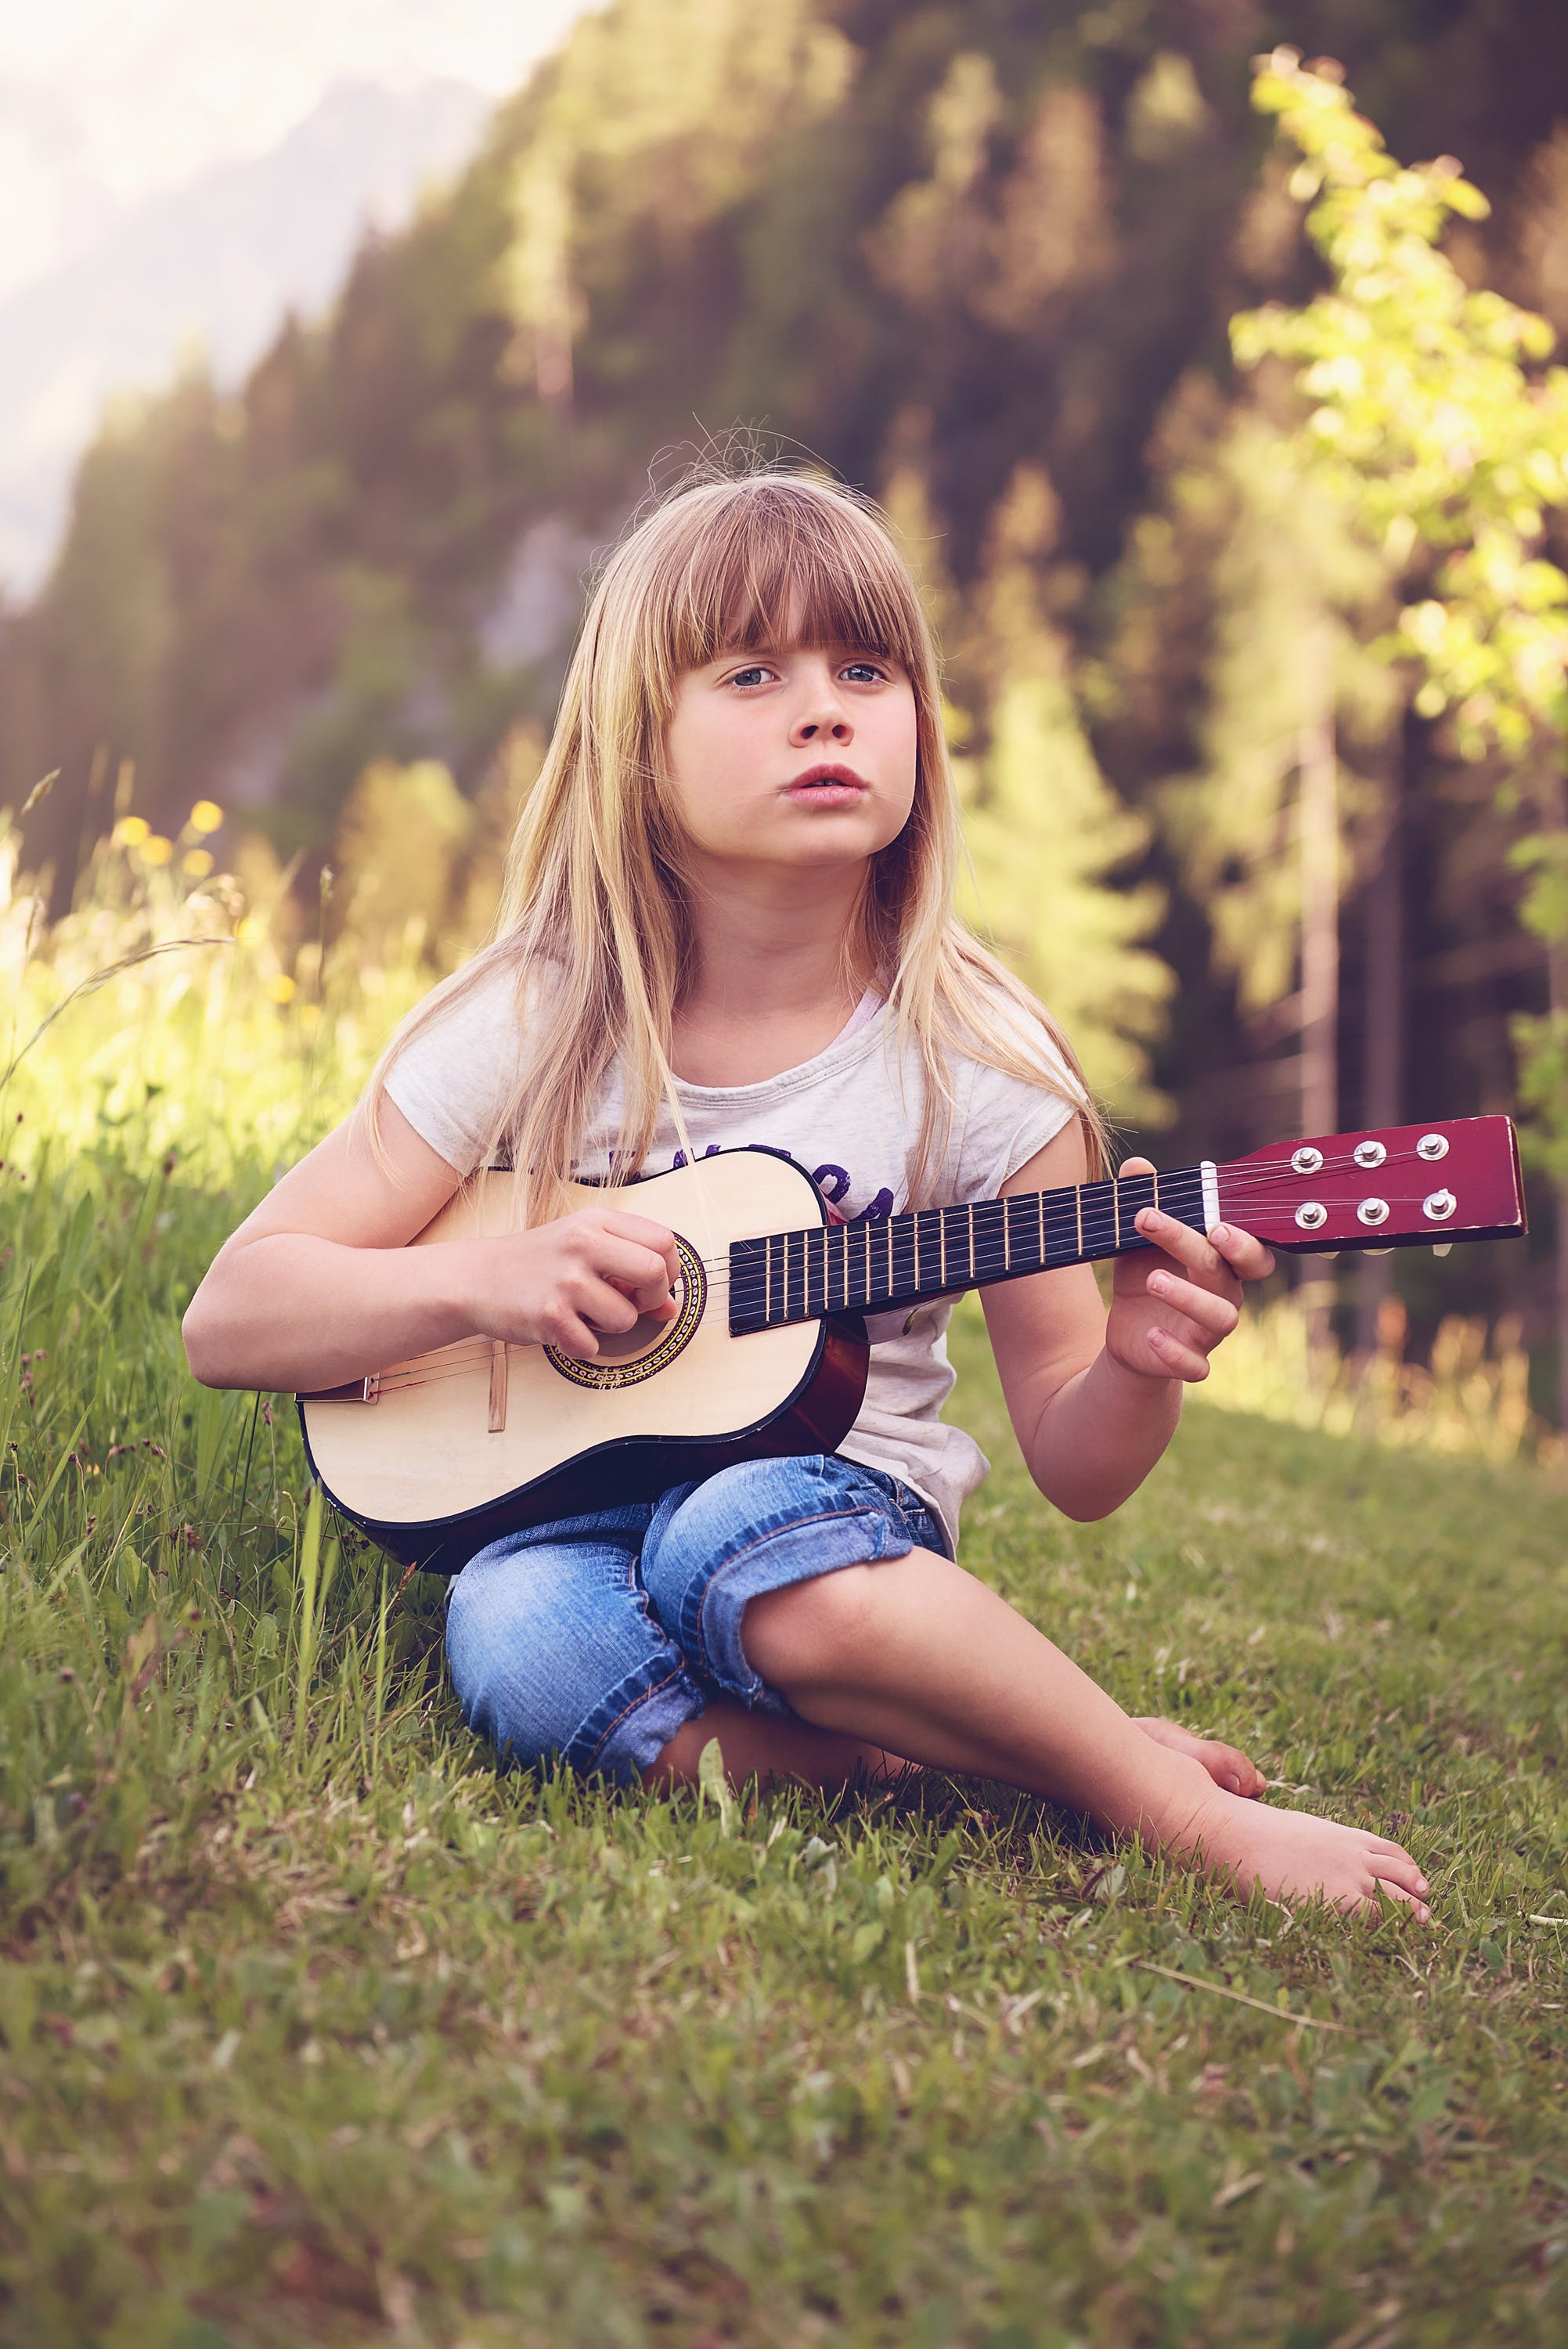 Free stock photo of nature, person, girl, music